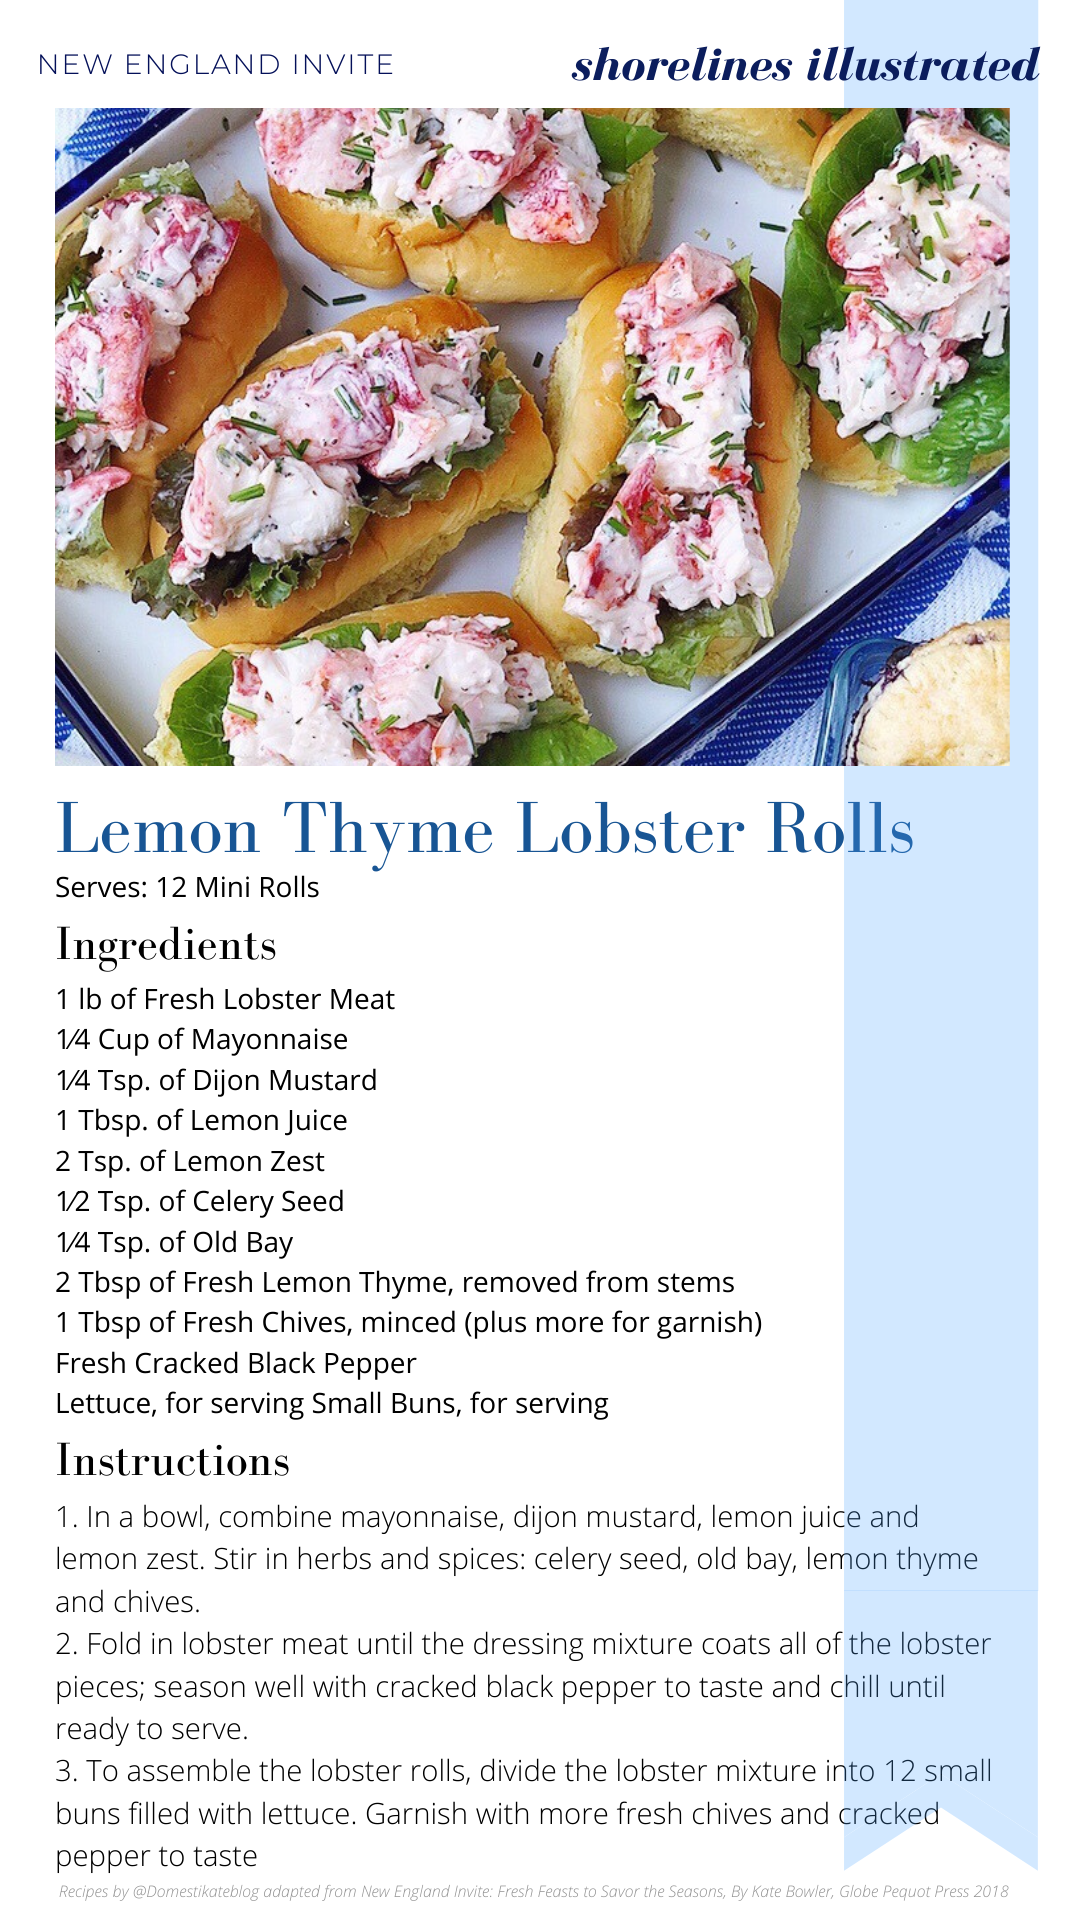 Classic_Summertime_Lunch_Menu_Lobster_Rolls_Kate_Bowler_New_England_Invite_3